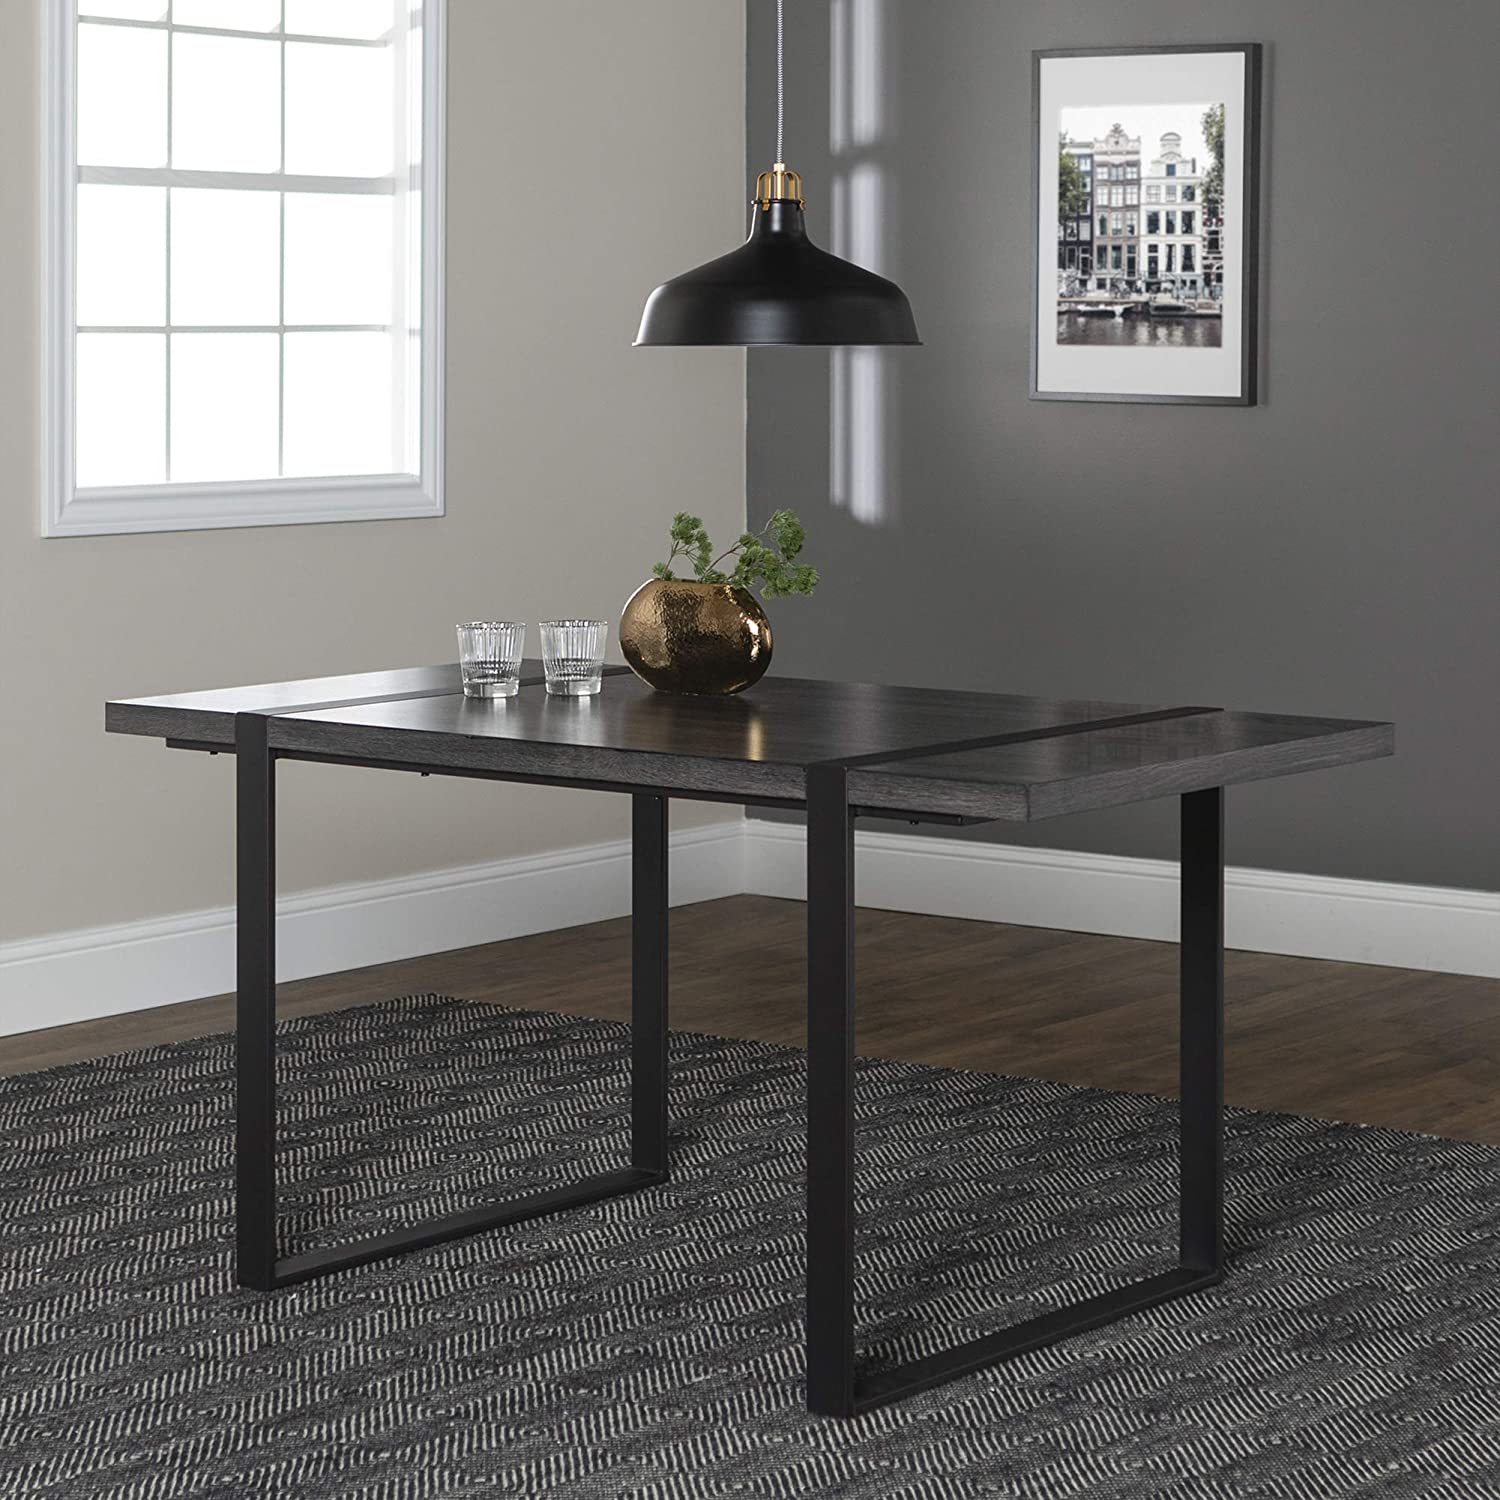 WE Furniture 6 Person Industrial Metal Wood Rectangle Kitchen Dining Table, 60 Inch, Charcoal Grey